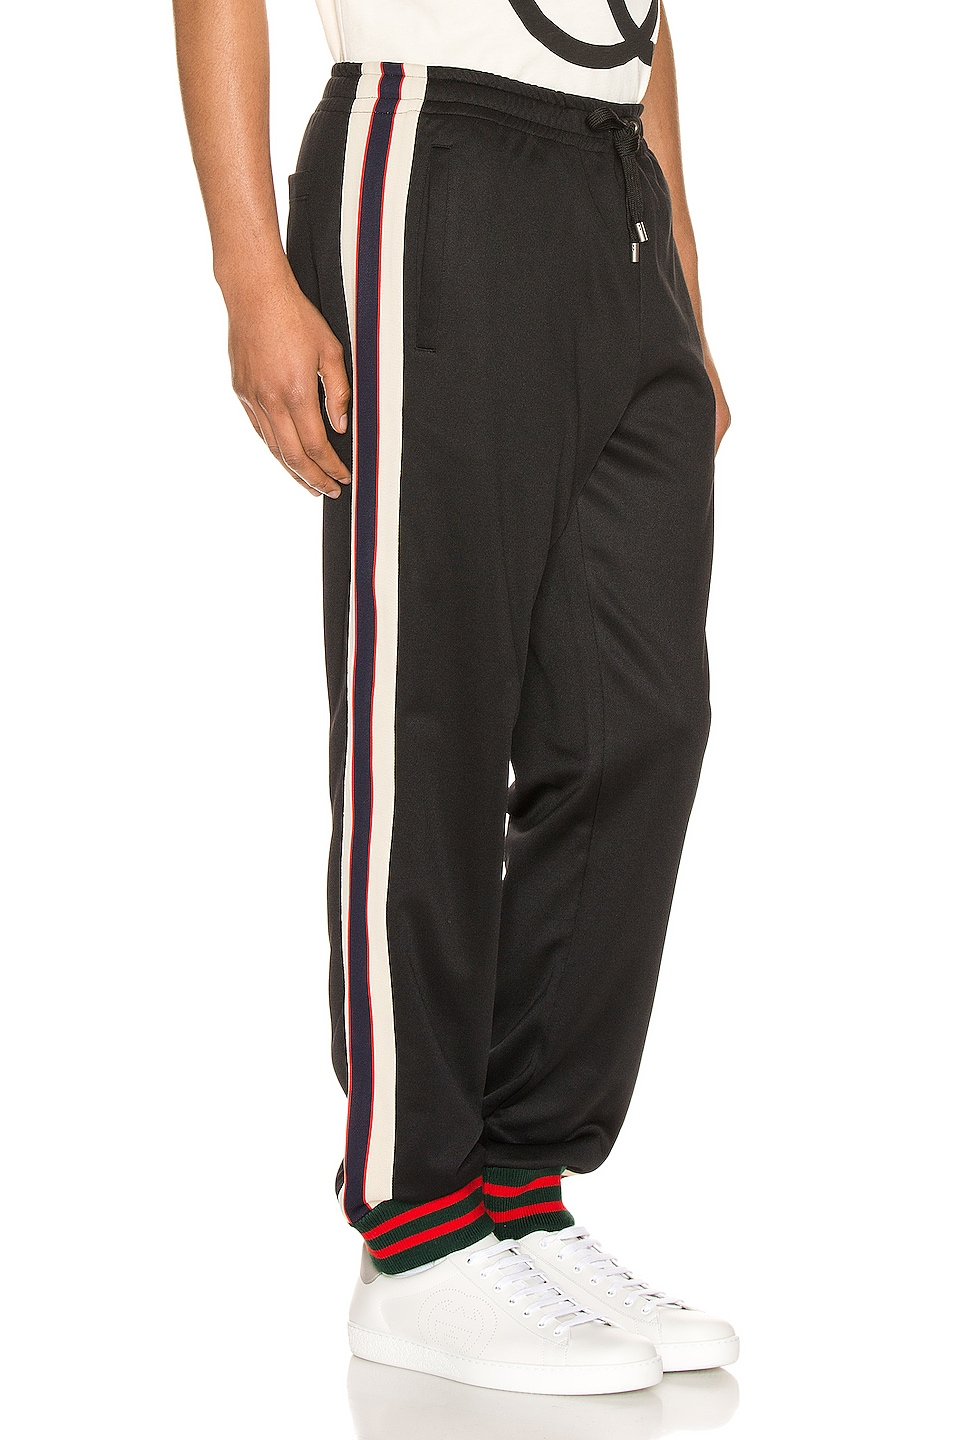 Image 3 of Gucci Technical Jersey Pant in Black & Ivory & Live Red